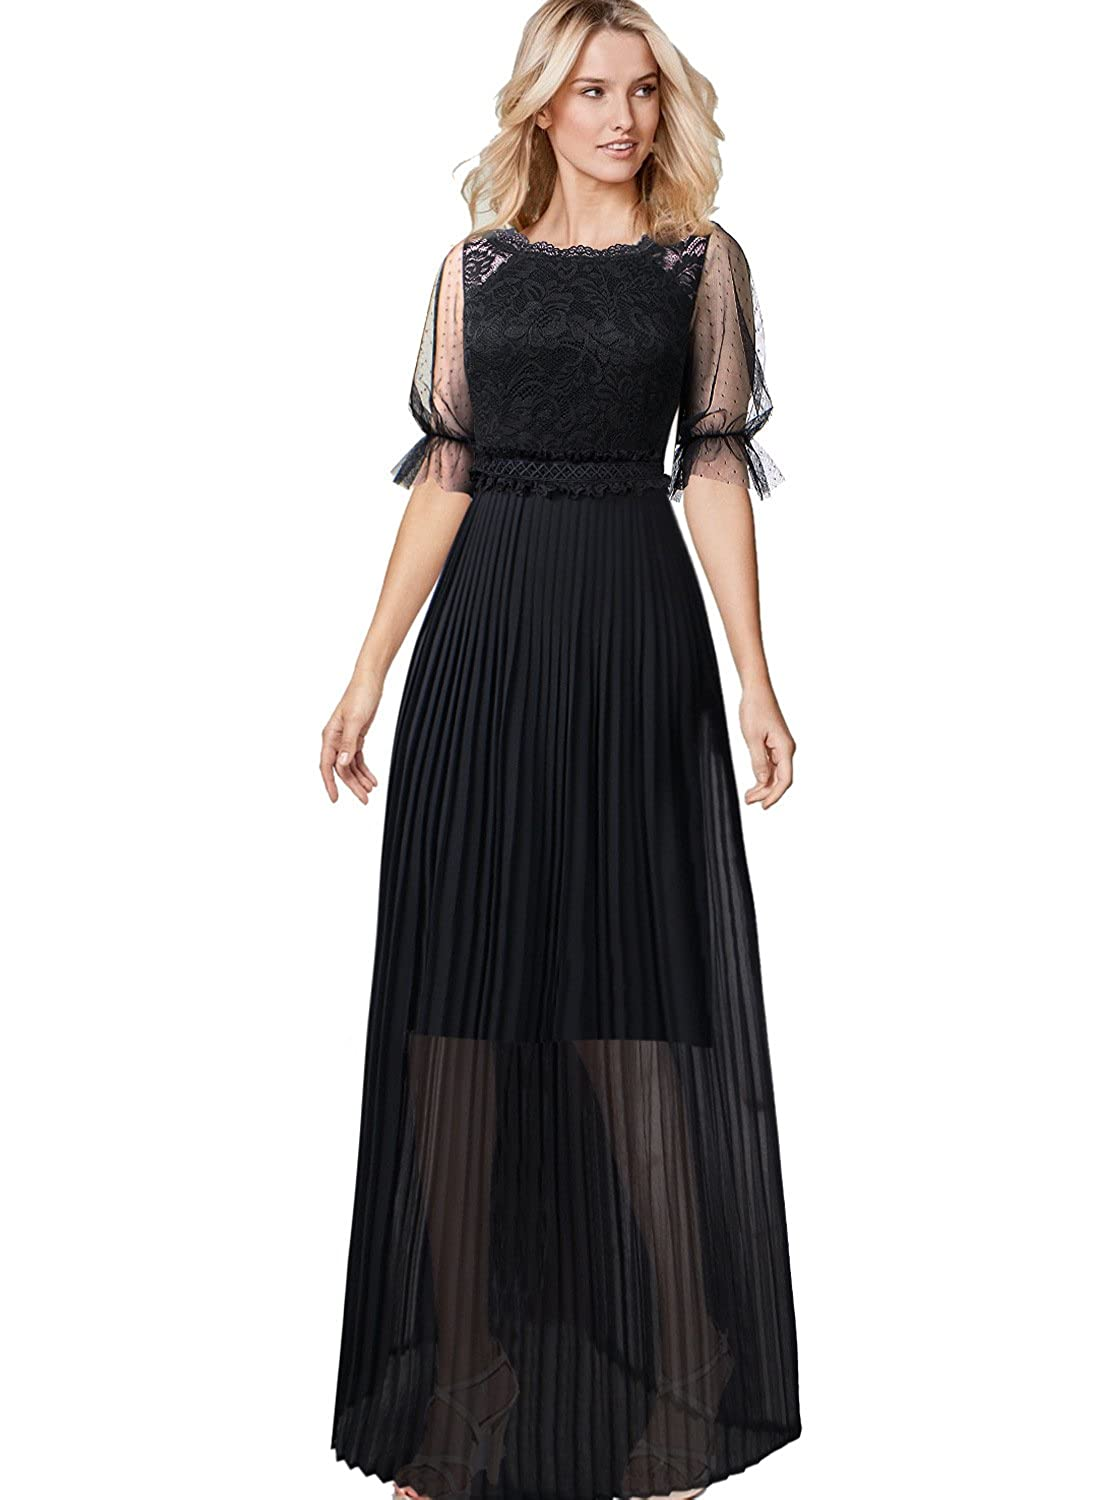 48e05df4a9f0 VFSHOW Women Pleated Lace Chiffon Formal Evening Casual Maxi A-Line Dress  at Amazon Women's Clothing store: